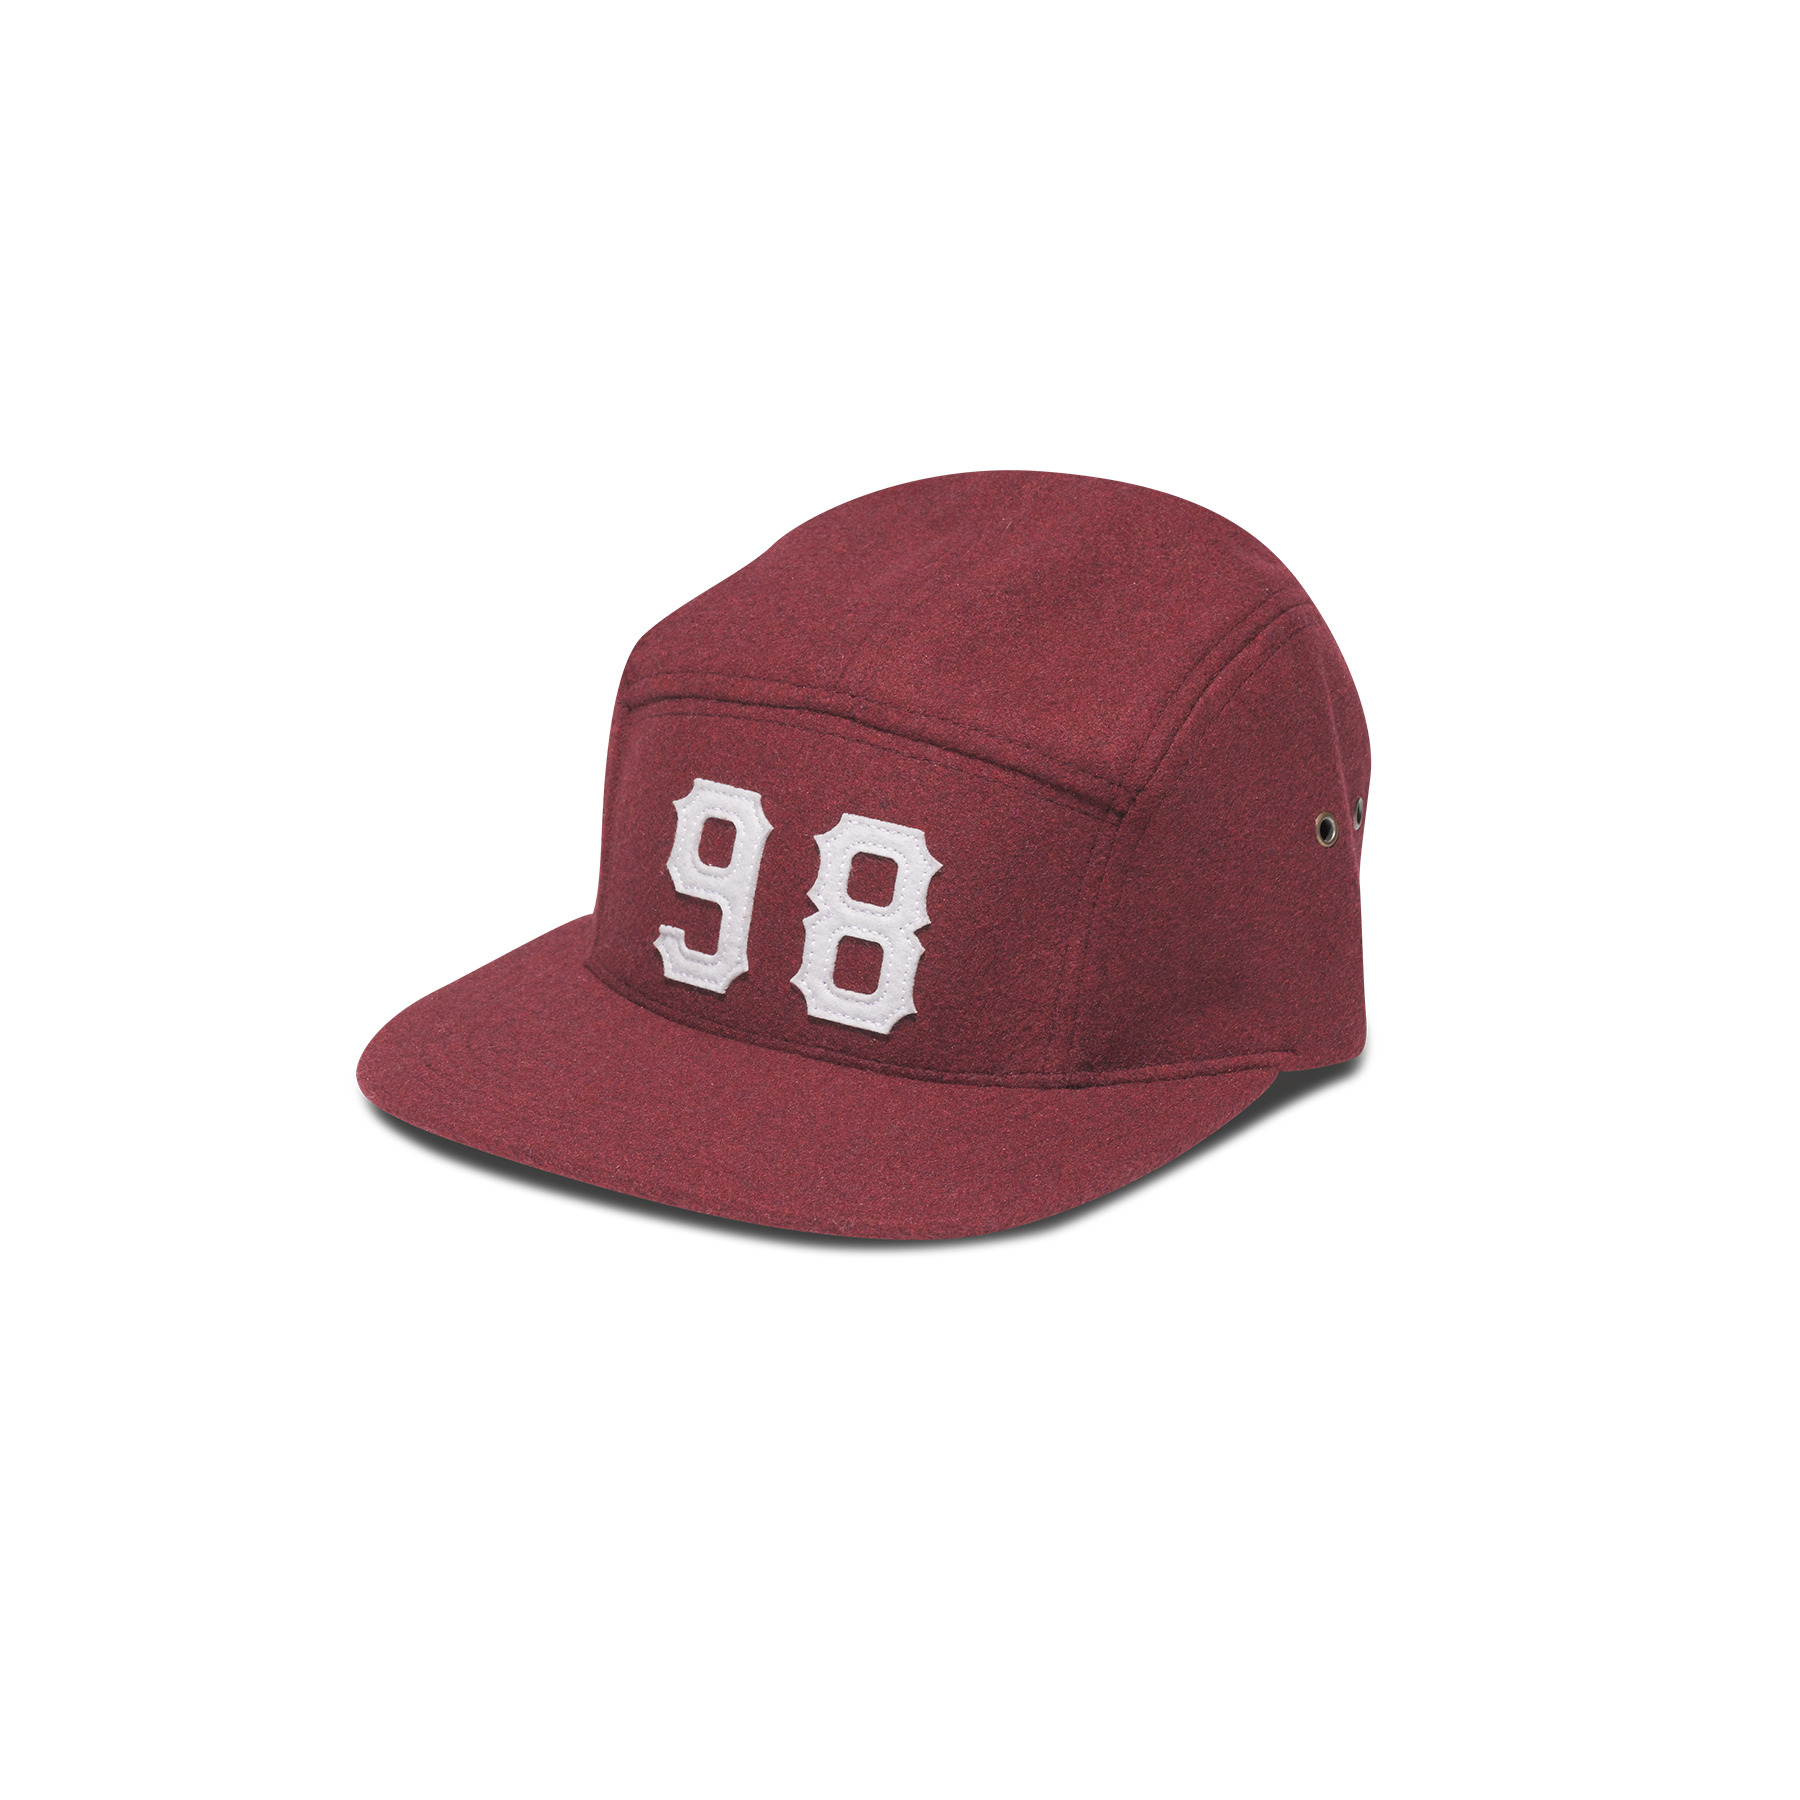 hol_1_headwear_del_1_2__0015_hat_melton_98_5-panel_burg.jpg